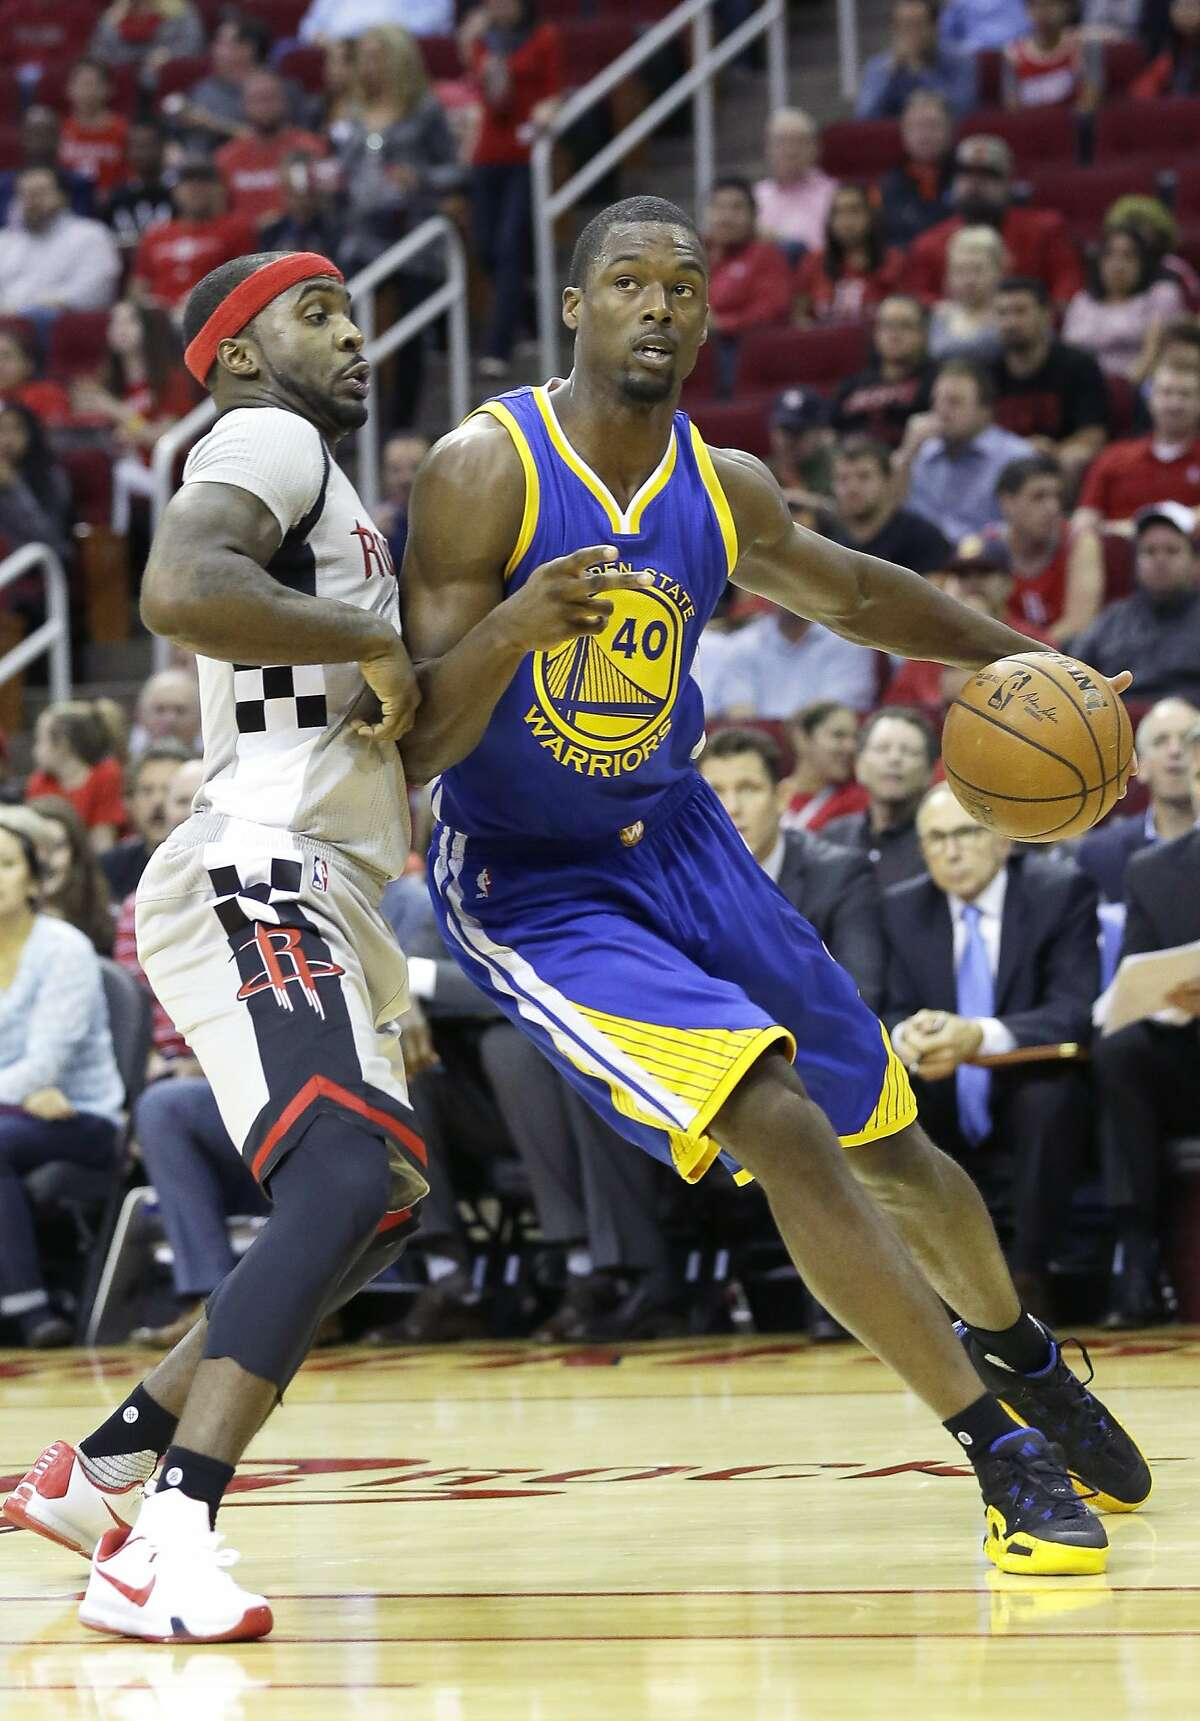 Golden State Warriors' Harrison Barnes (40) is defended by Houston Rockets' Ty Lawson in the first half of a NBA basketball game Friday, Oct. 30, 2015, in Houston. (AP Photo/Pat Sullivan)